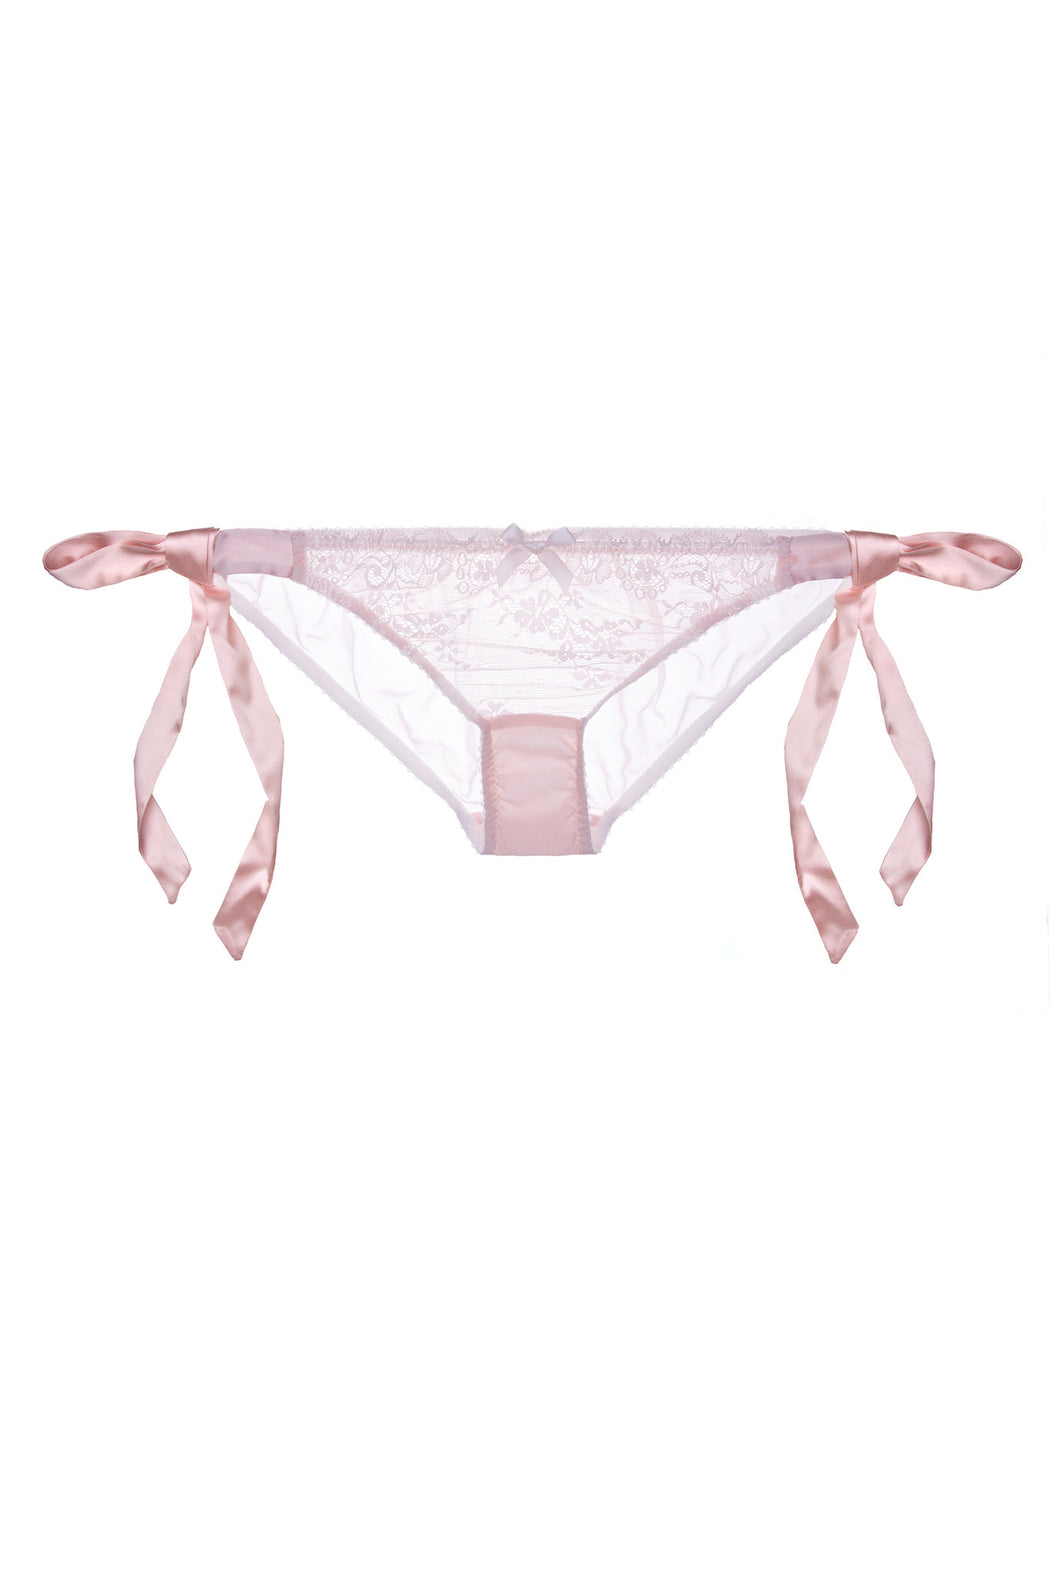 Silk and Lace Tea Rose tie side knicker by Lucile workingirls lingerie